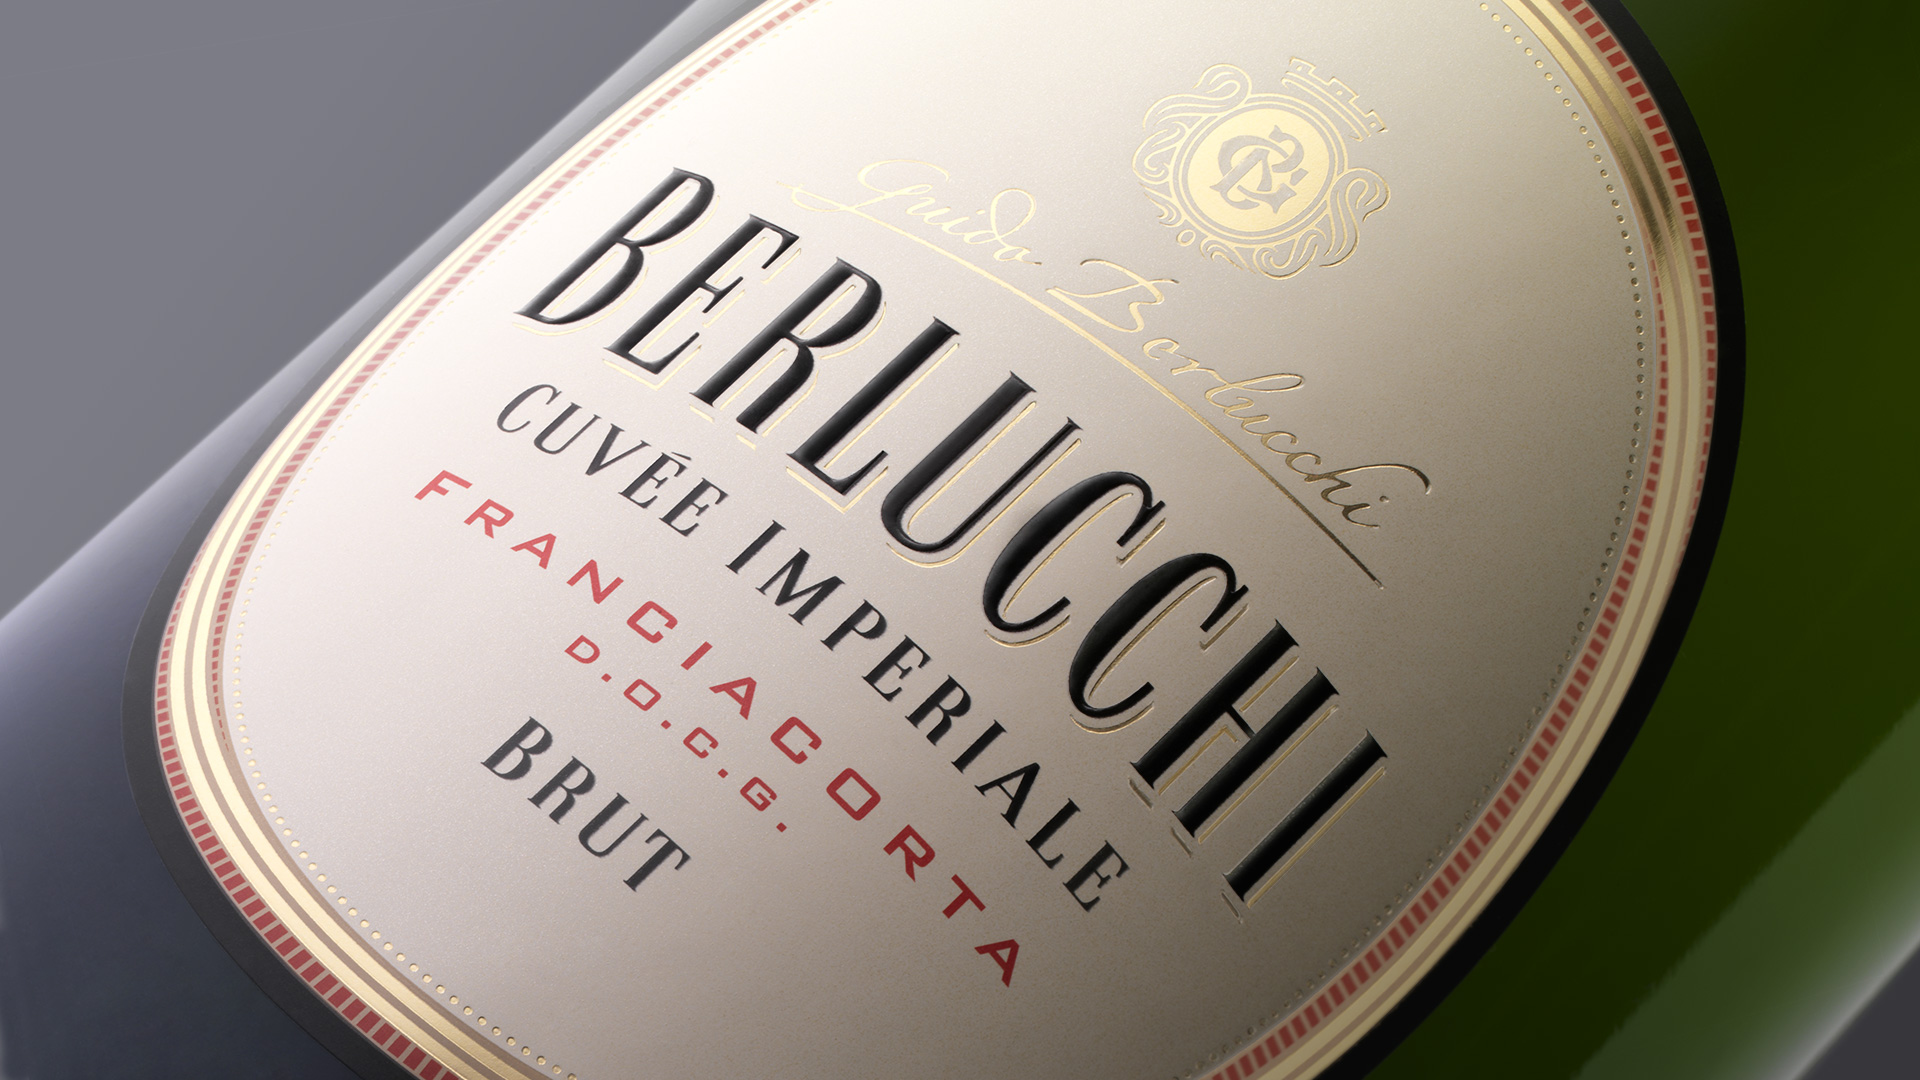 Guido Berlucchi Cuvée Imperiale close-up restyling